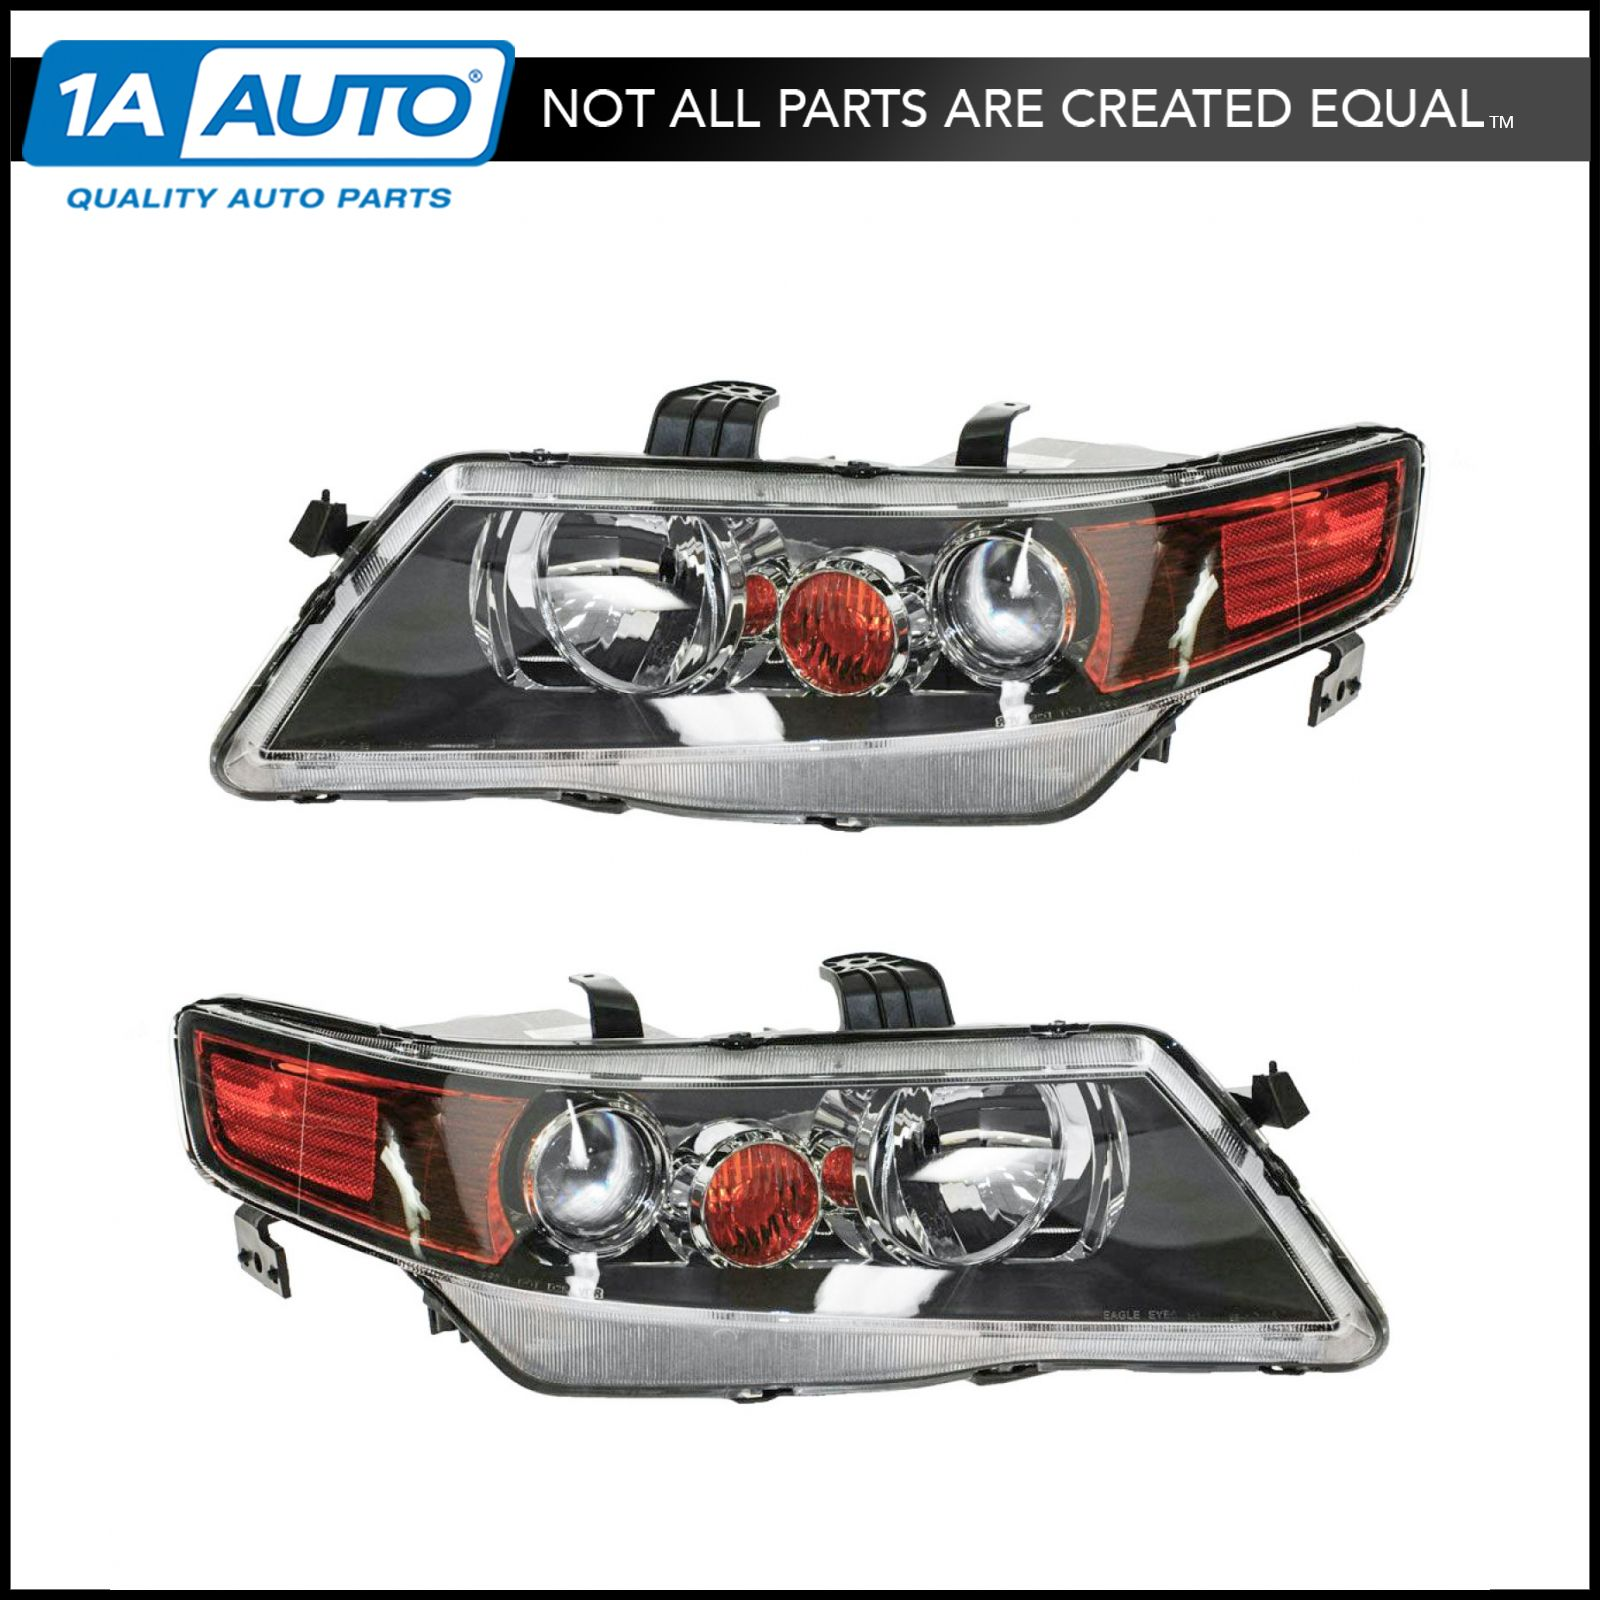 HID Xenon Headlight Headlamp Driver Side Left LH NEW for 04-05 Acura TSX